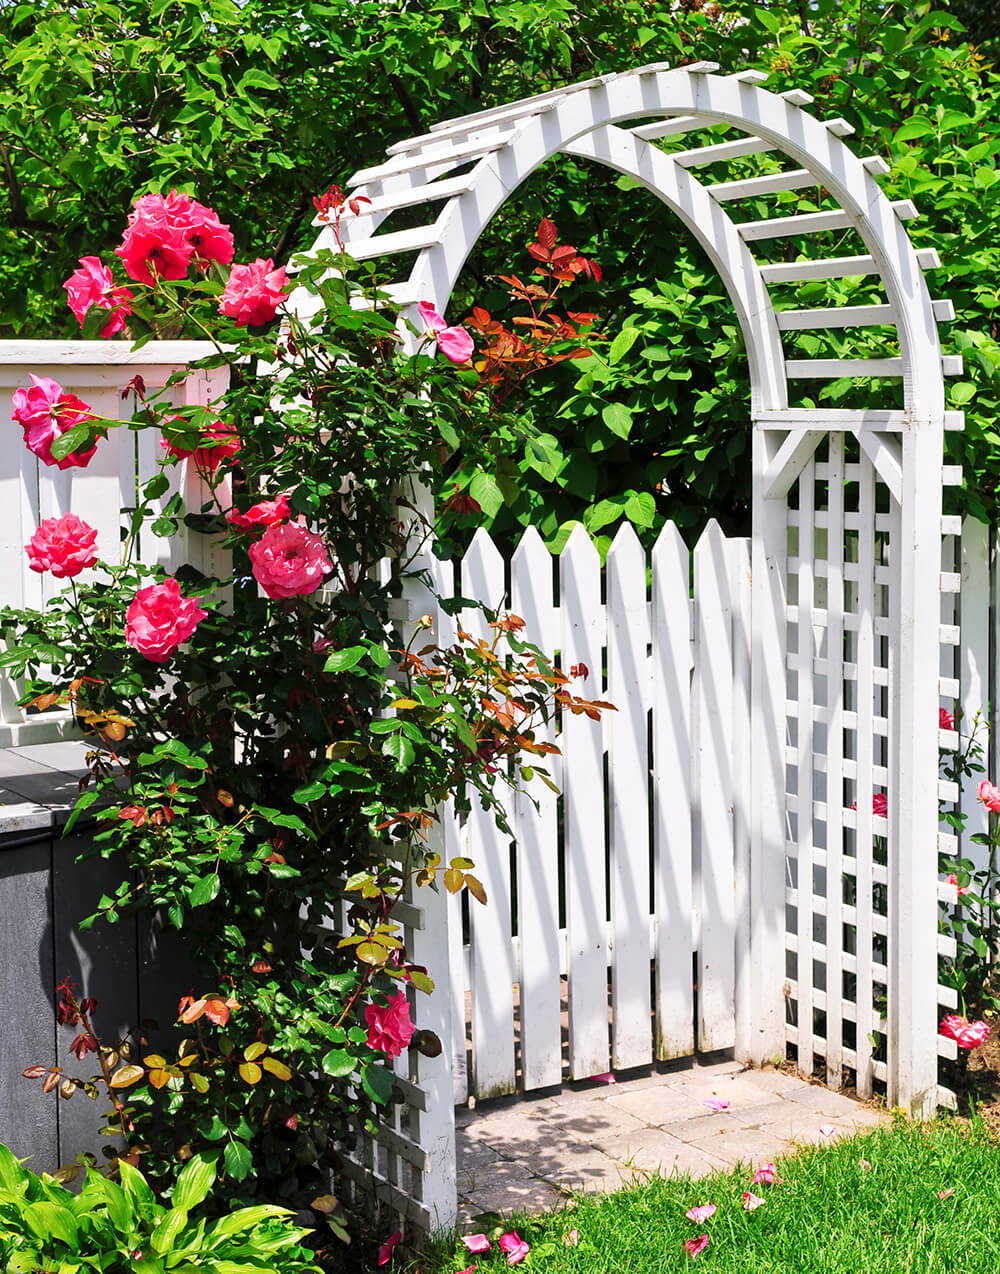 Change The Look Of Your Yard With An Arbor Or Pergola Backyard Ideas within Backyard Arbor Ideas